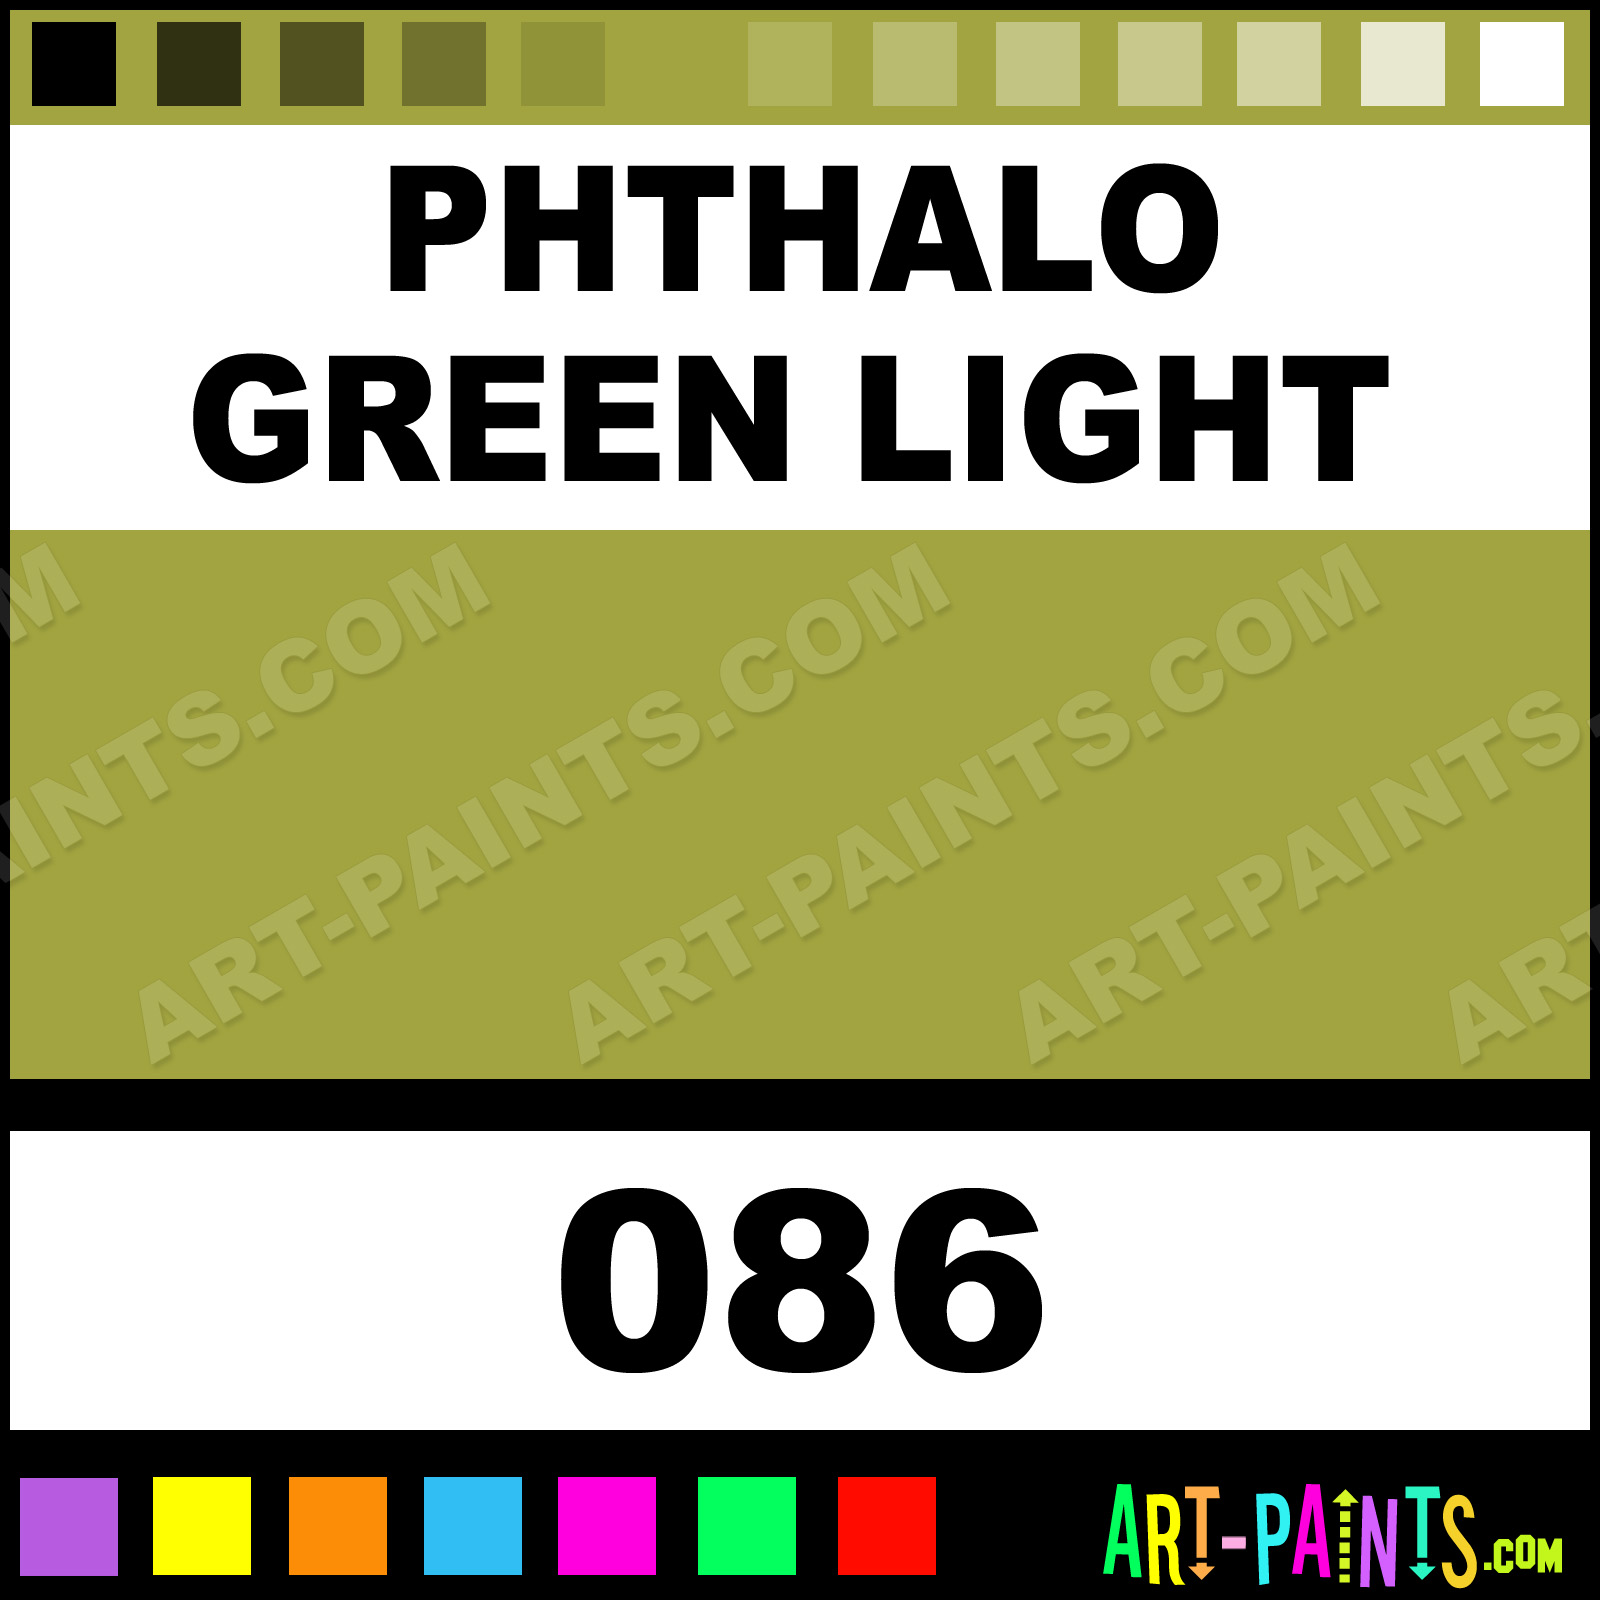 Phthalo green light oil pastel paints 086 phthalo Light pastel green paint